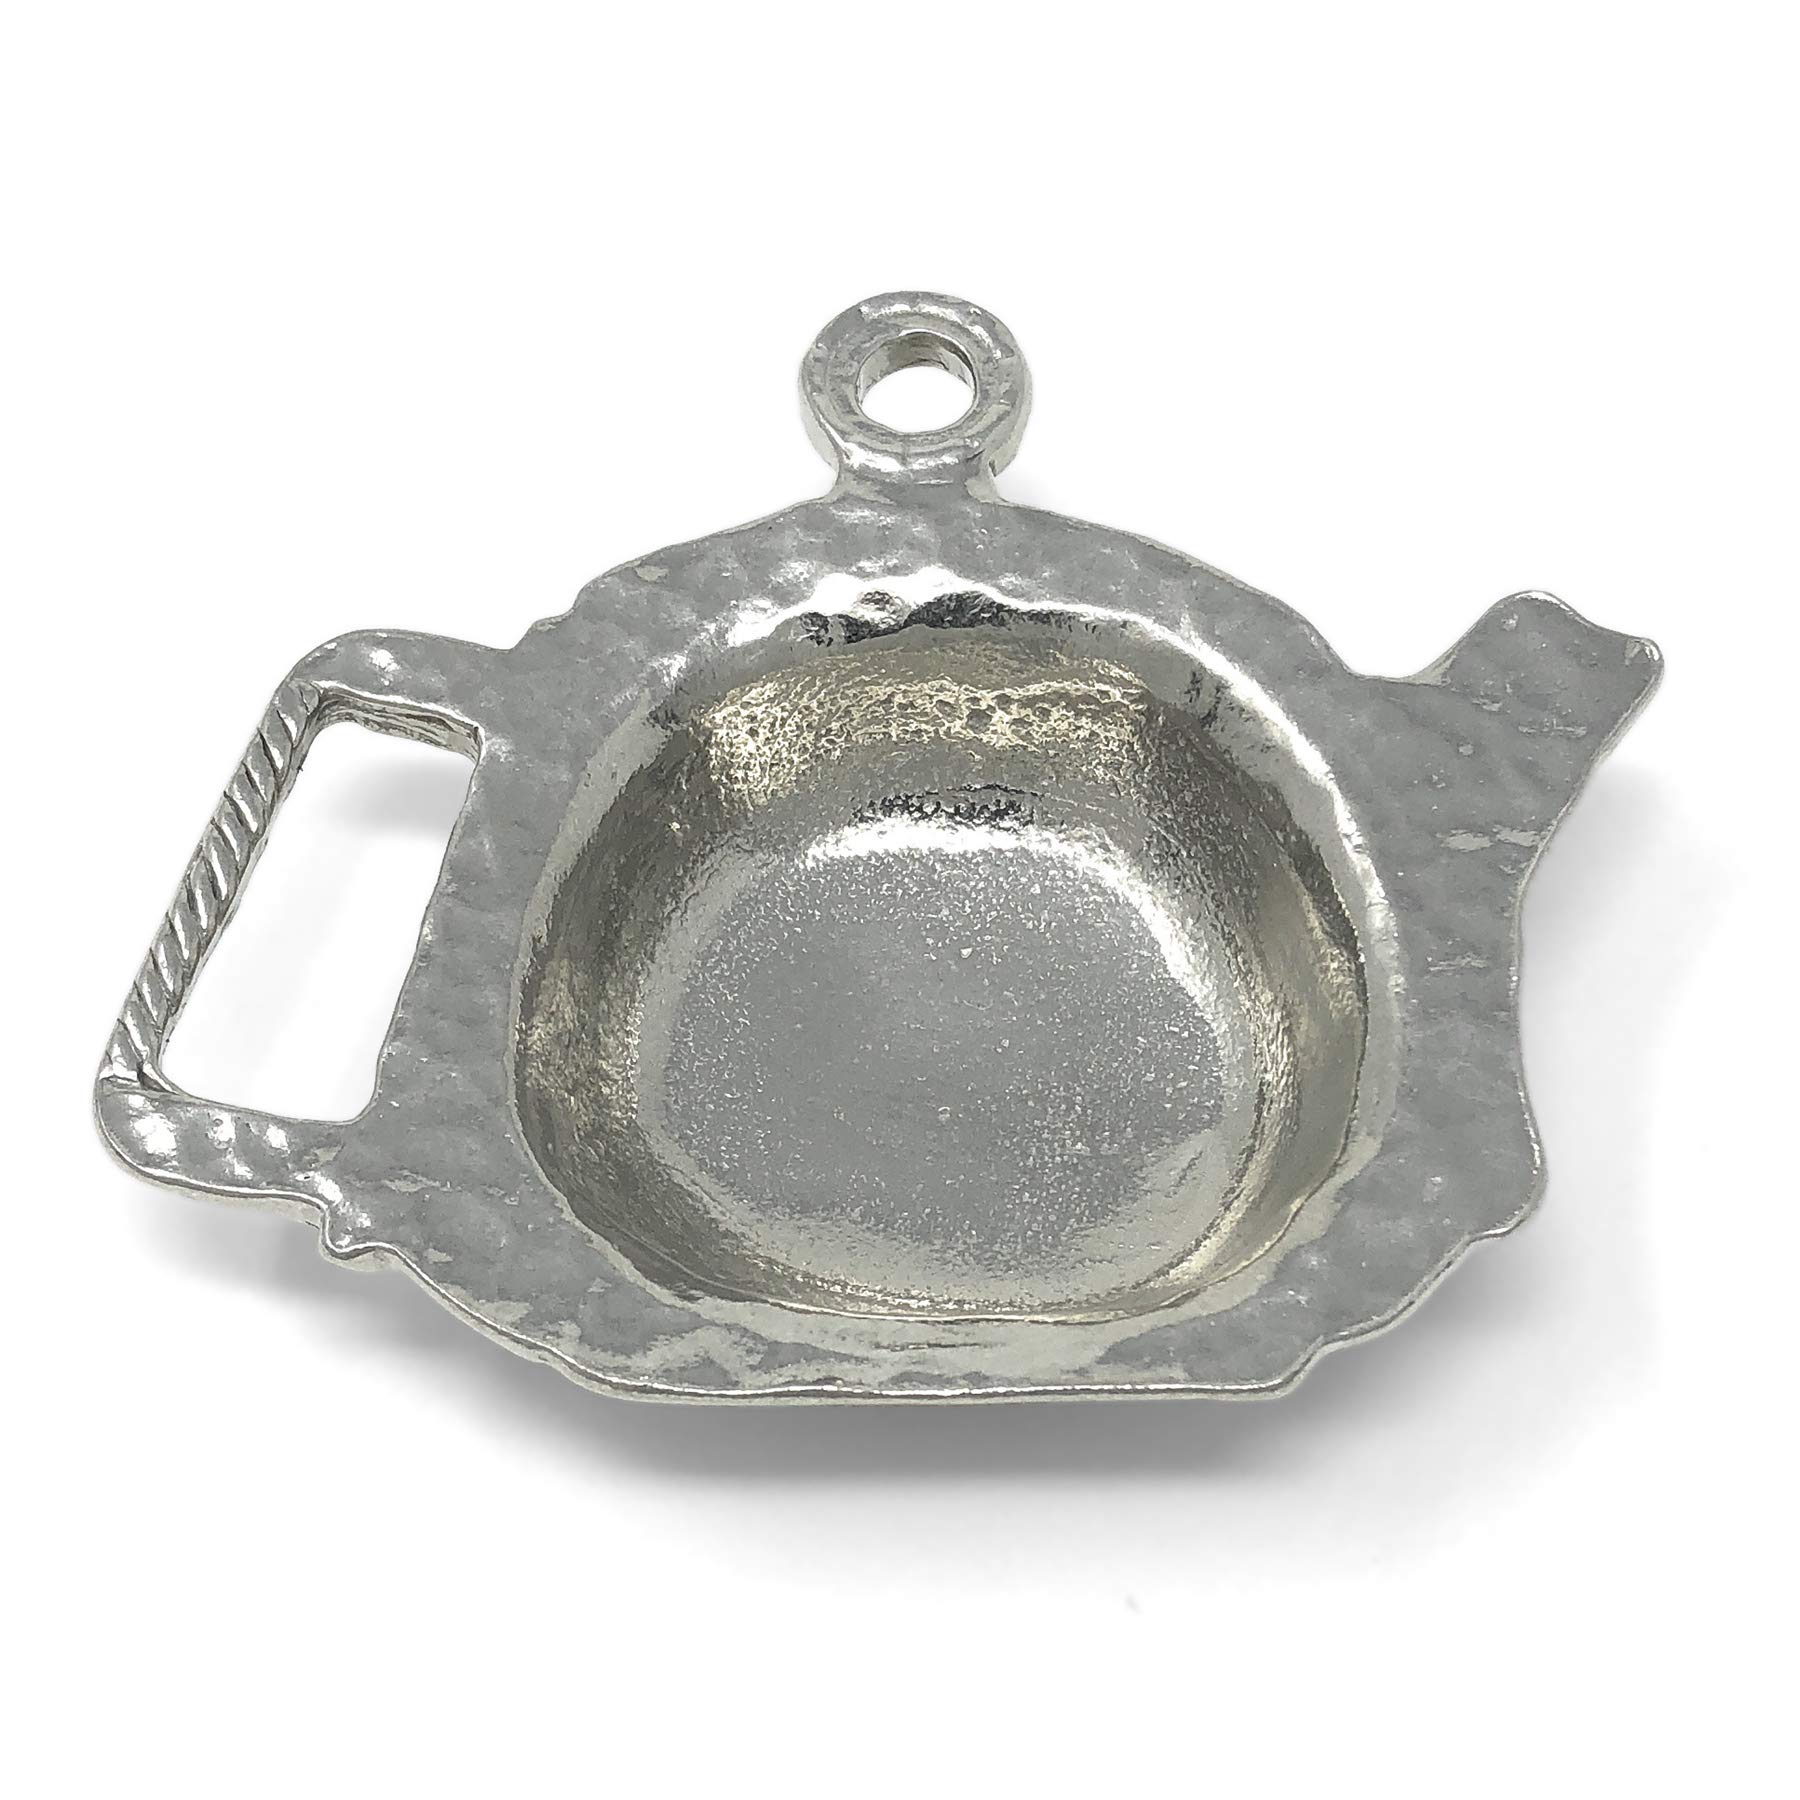 Crosby & Taylor Teapot Shaped Pewter Teabag Holder Trinket Dish by Crosby & Taylor